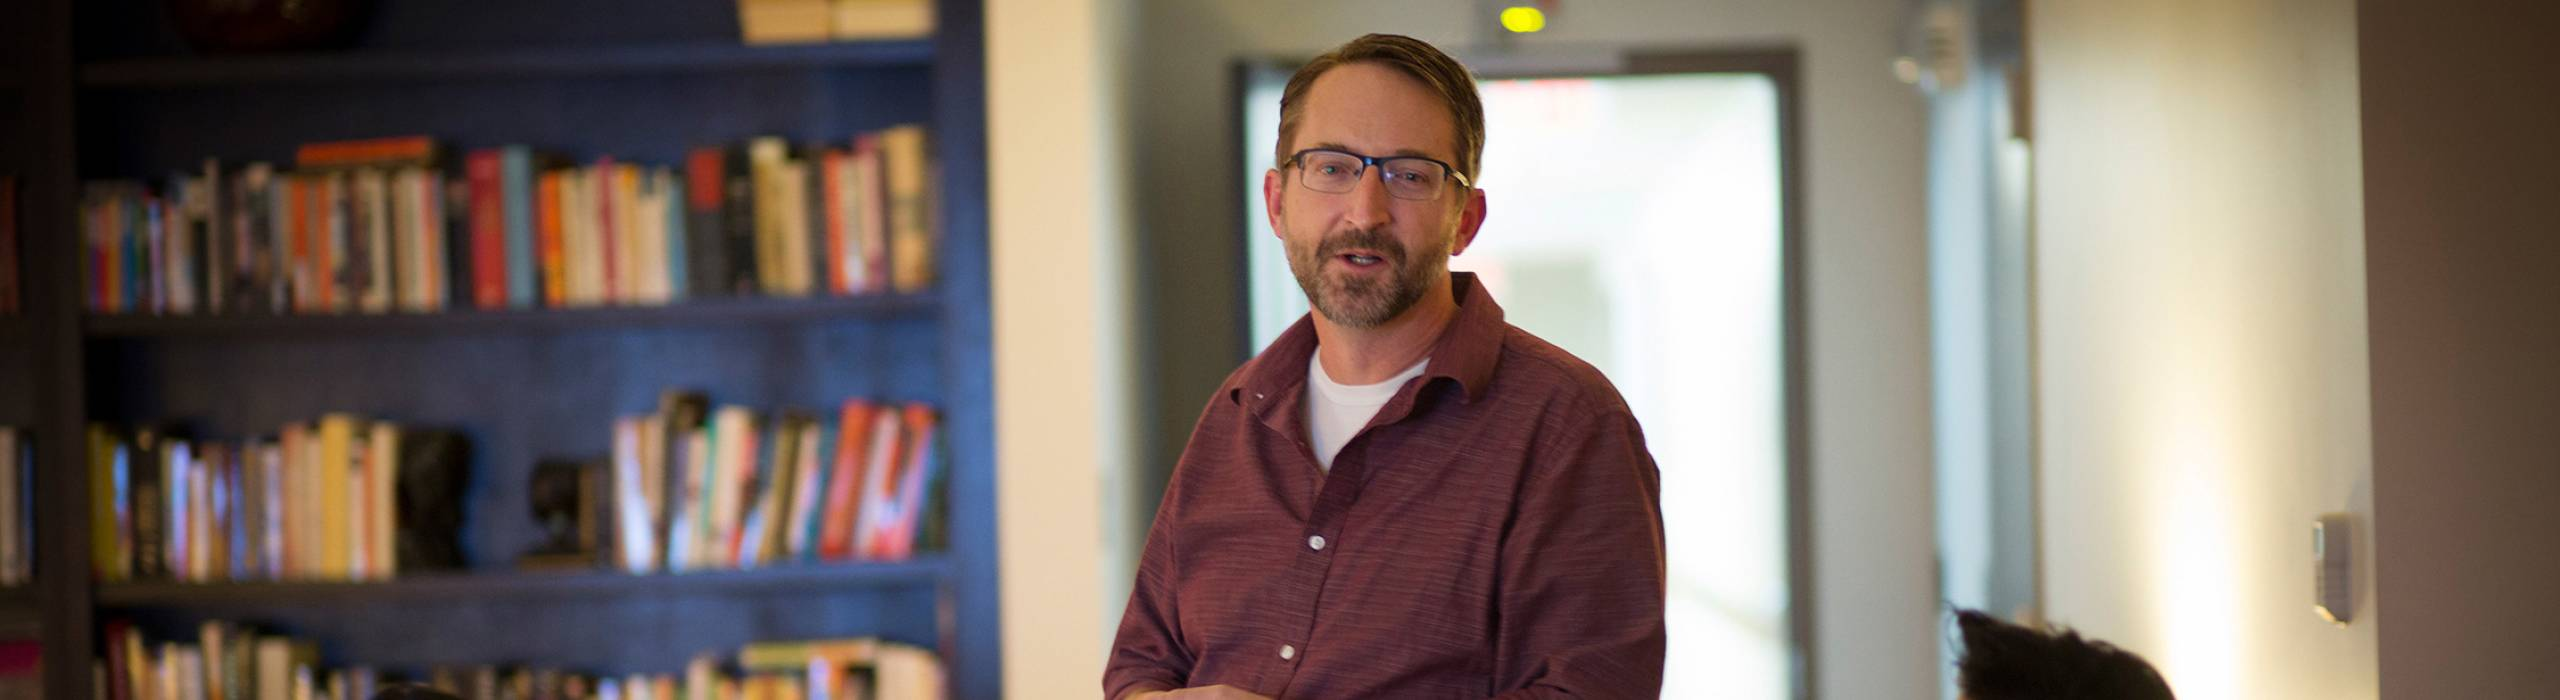 Information Science Associate Professor and Department Chair Steve Jackson